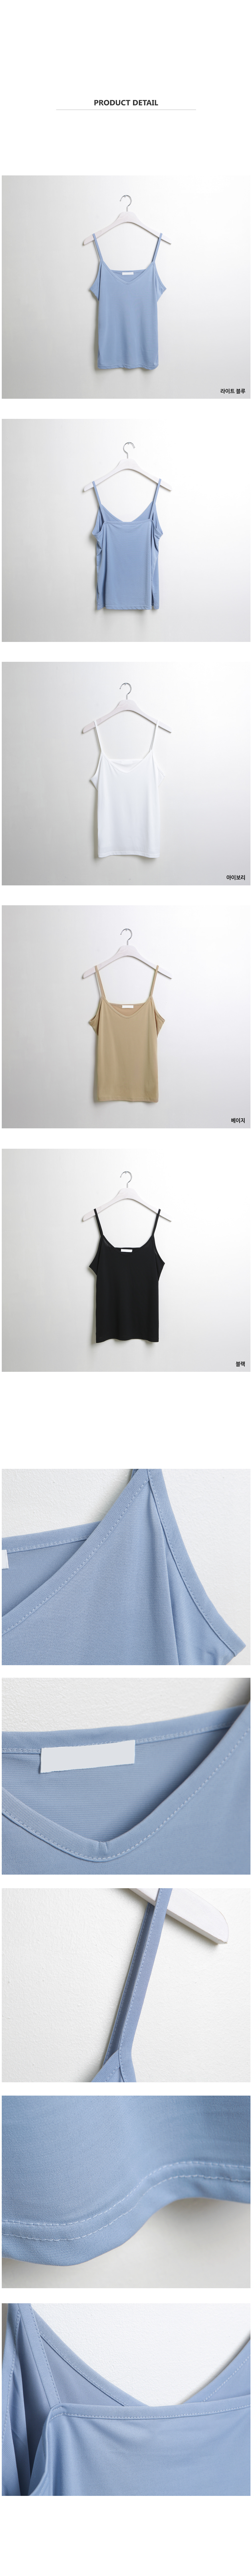 Cool Summer Sniper Cool Strap Sleeveless T#YW659